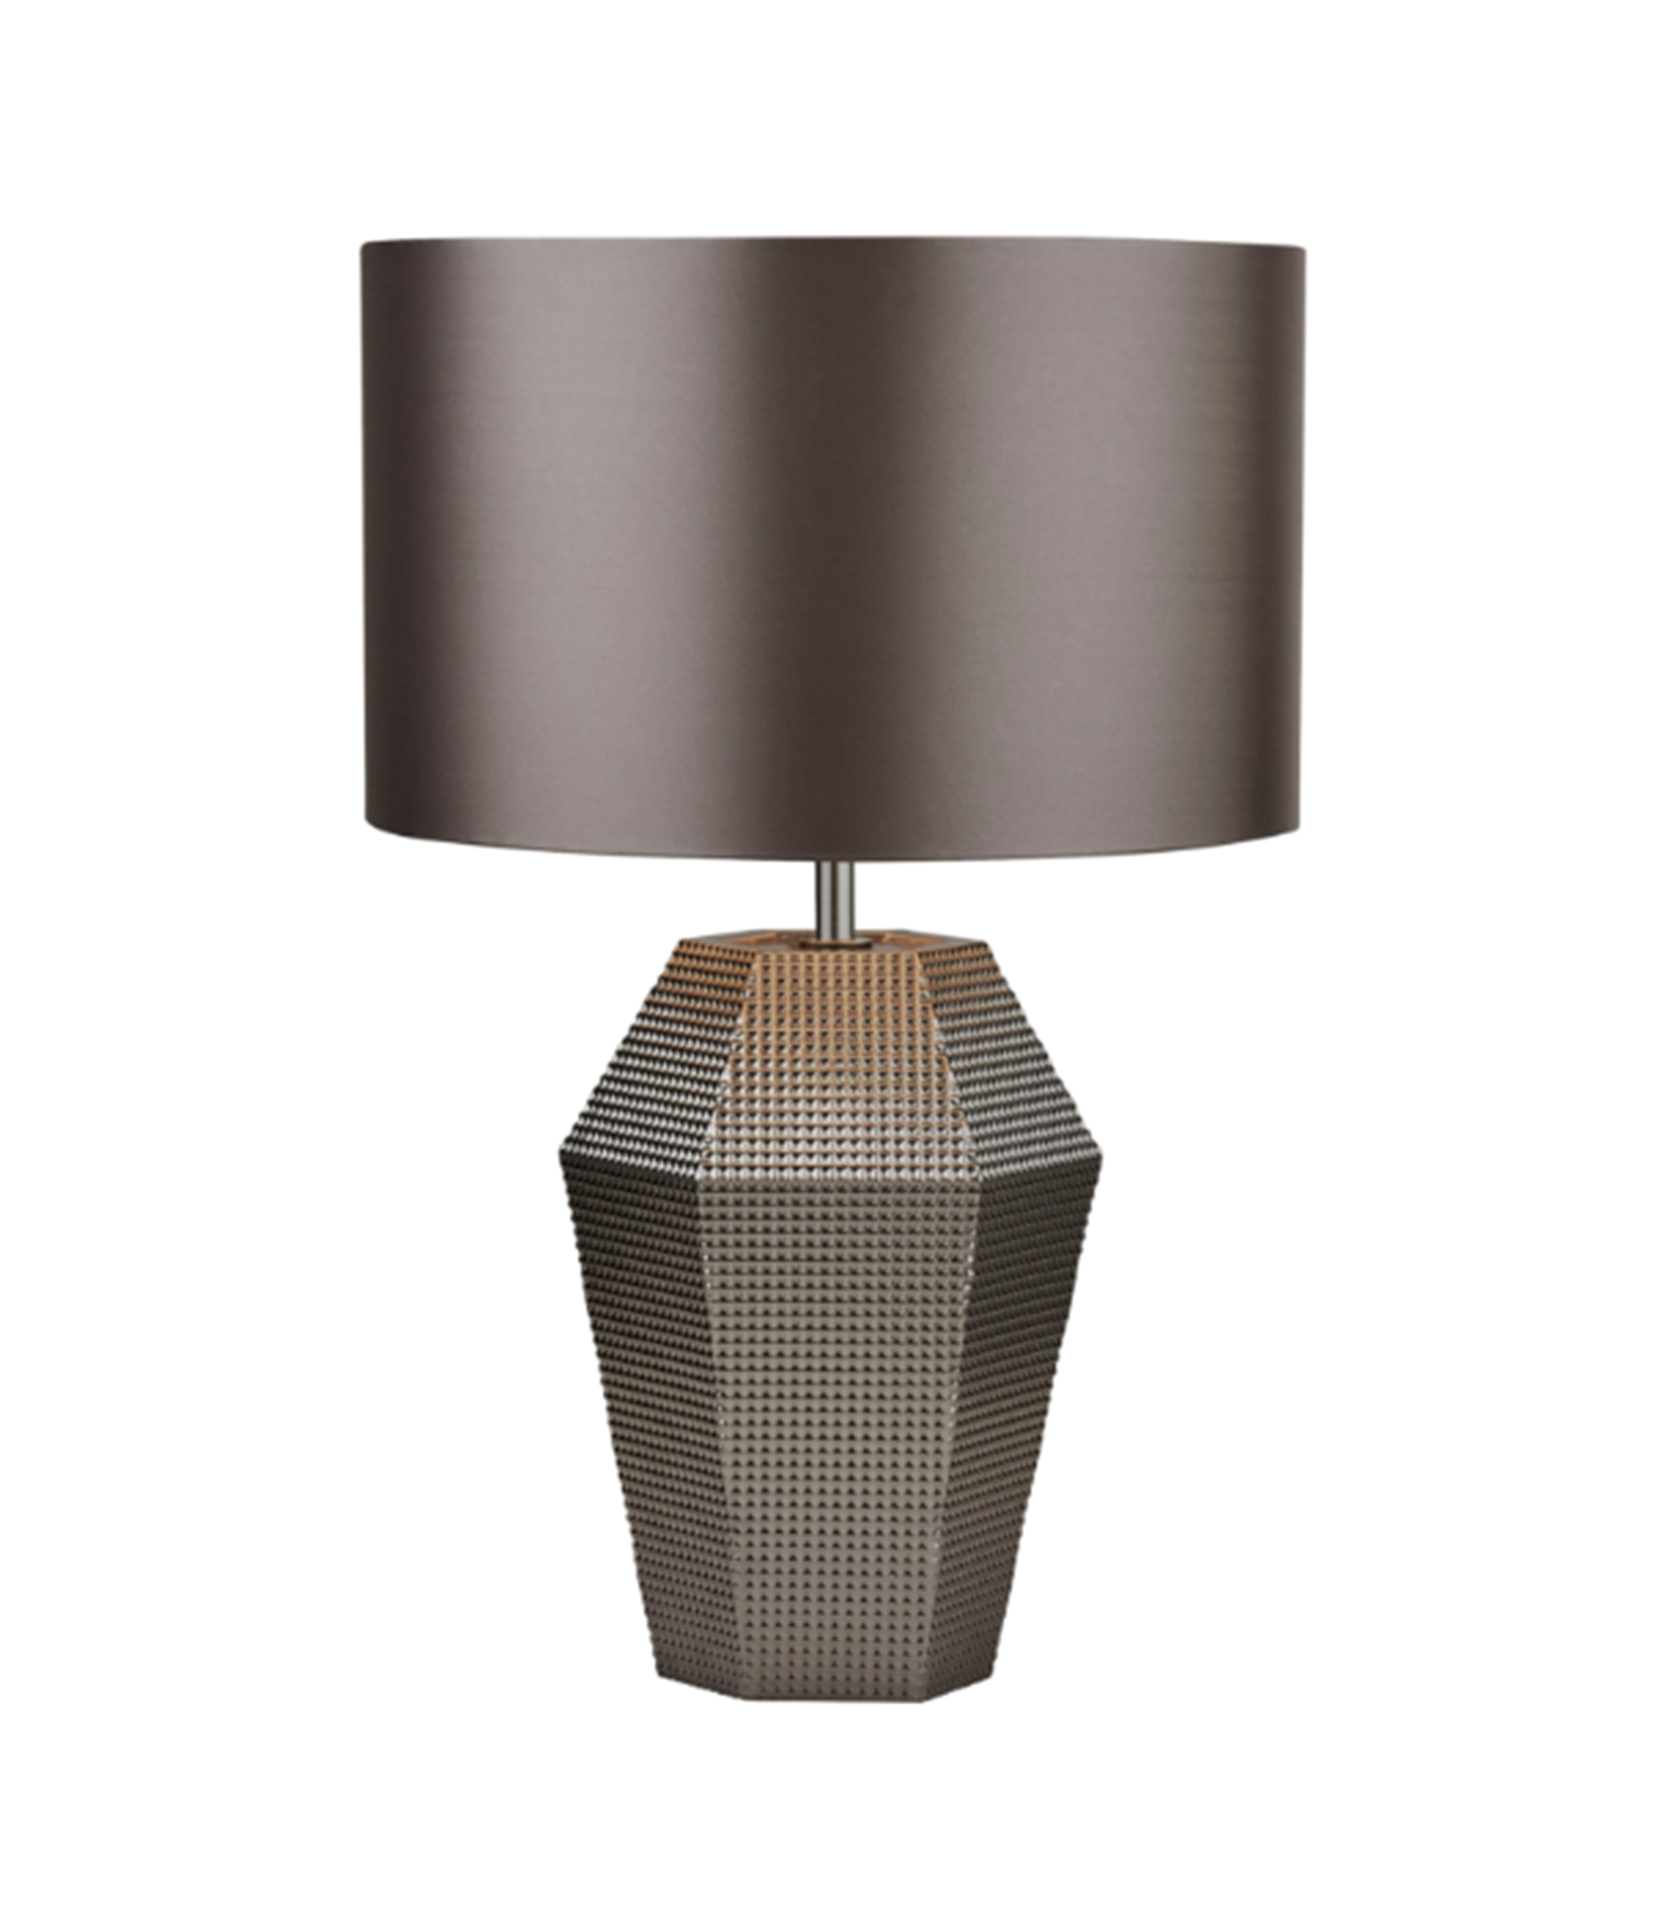 SEARCHLIGHT SMOKED GLASS TABLE LAMP WITH GREY DRUM SHADE 8347SM